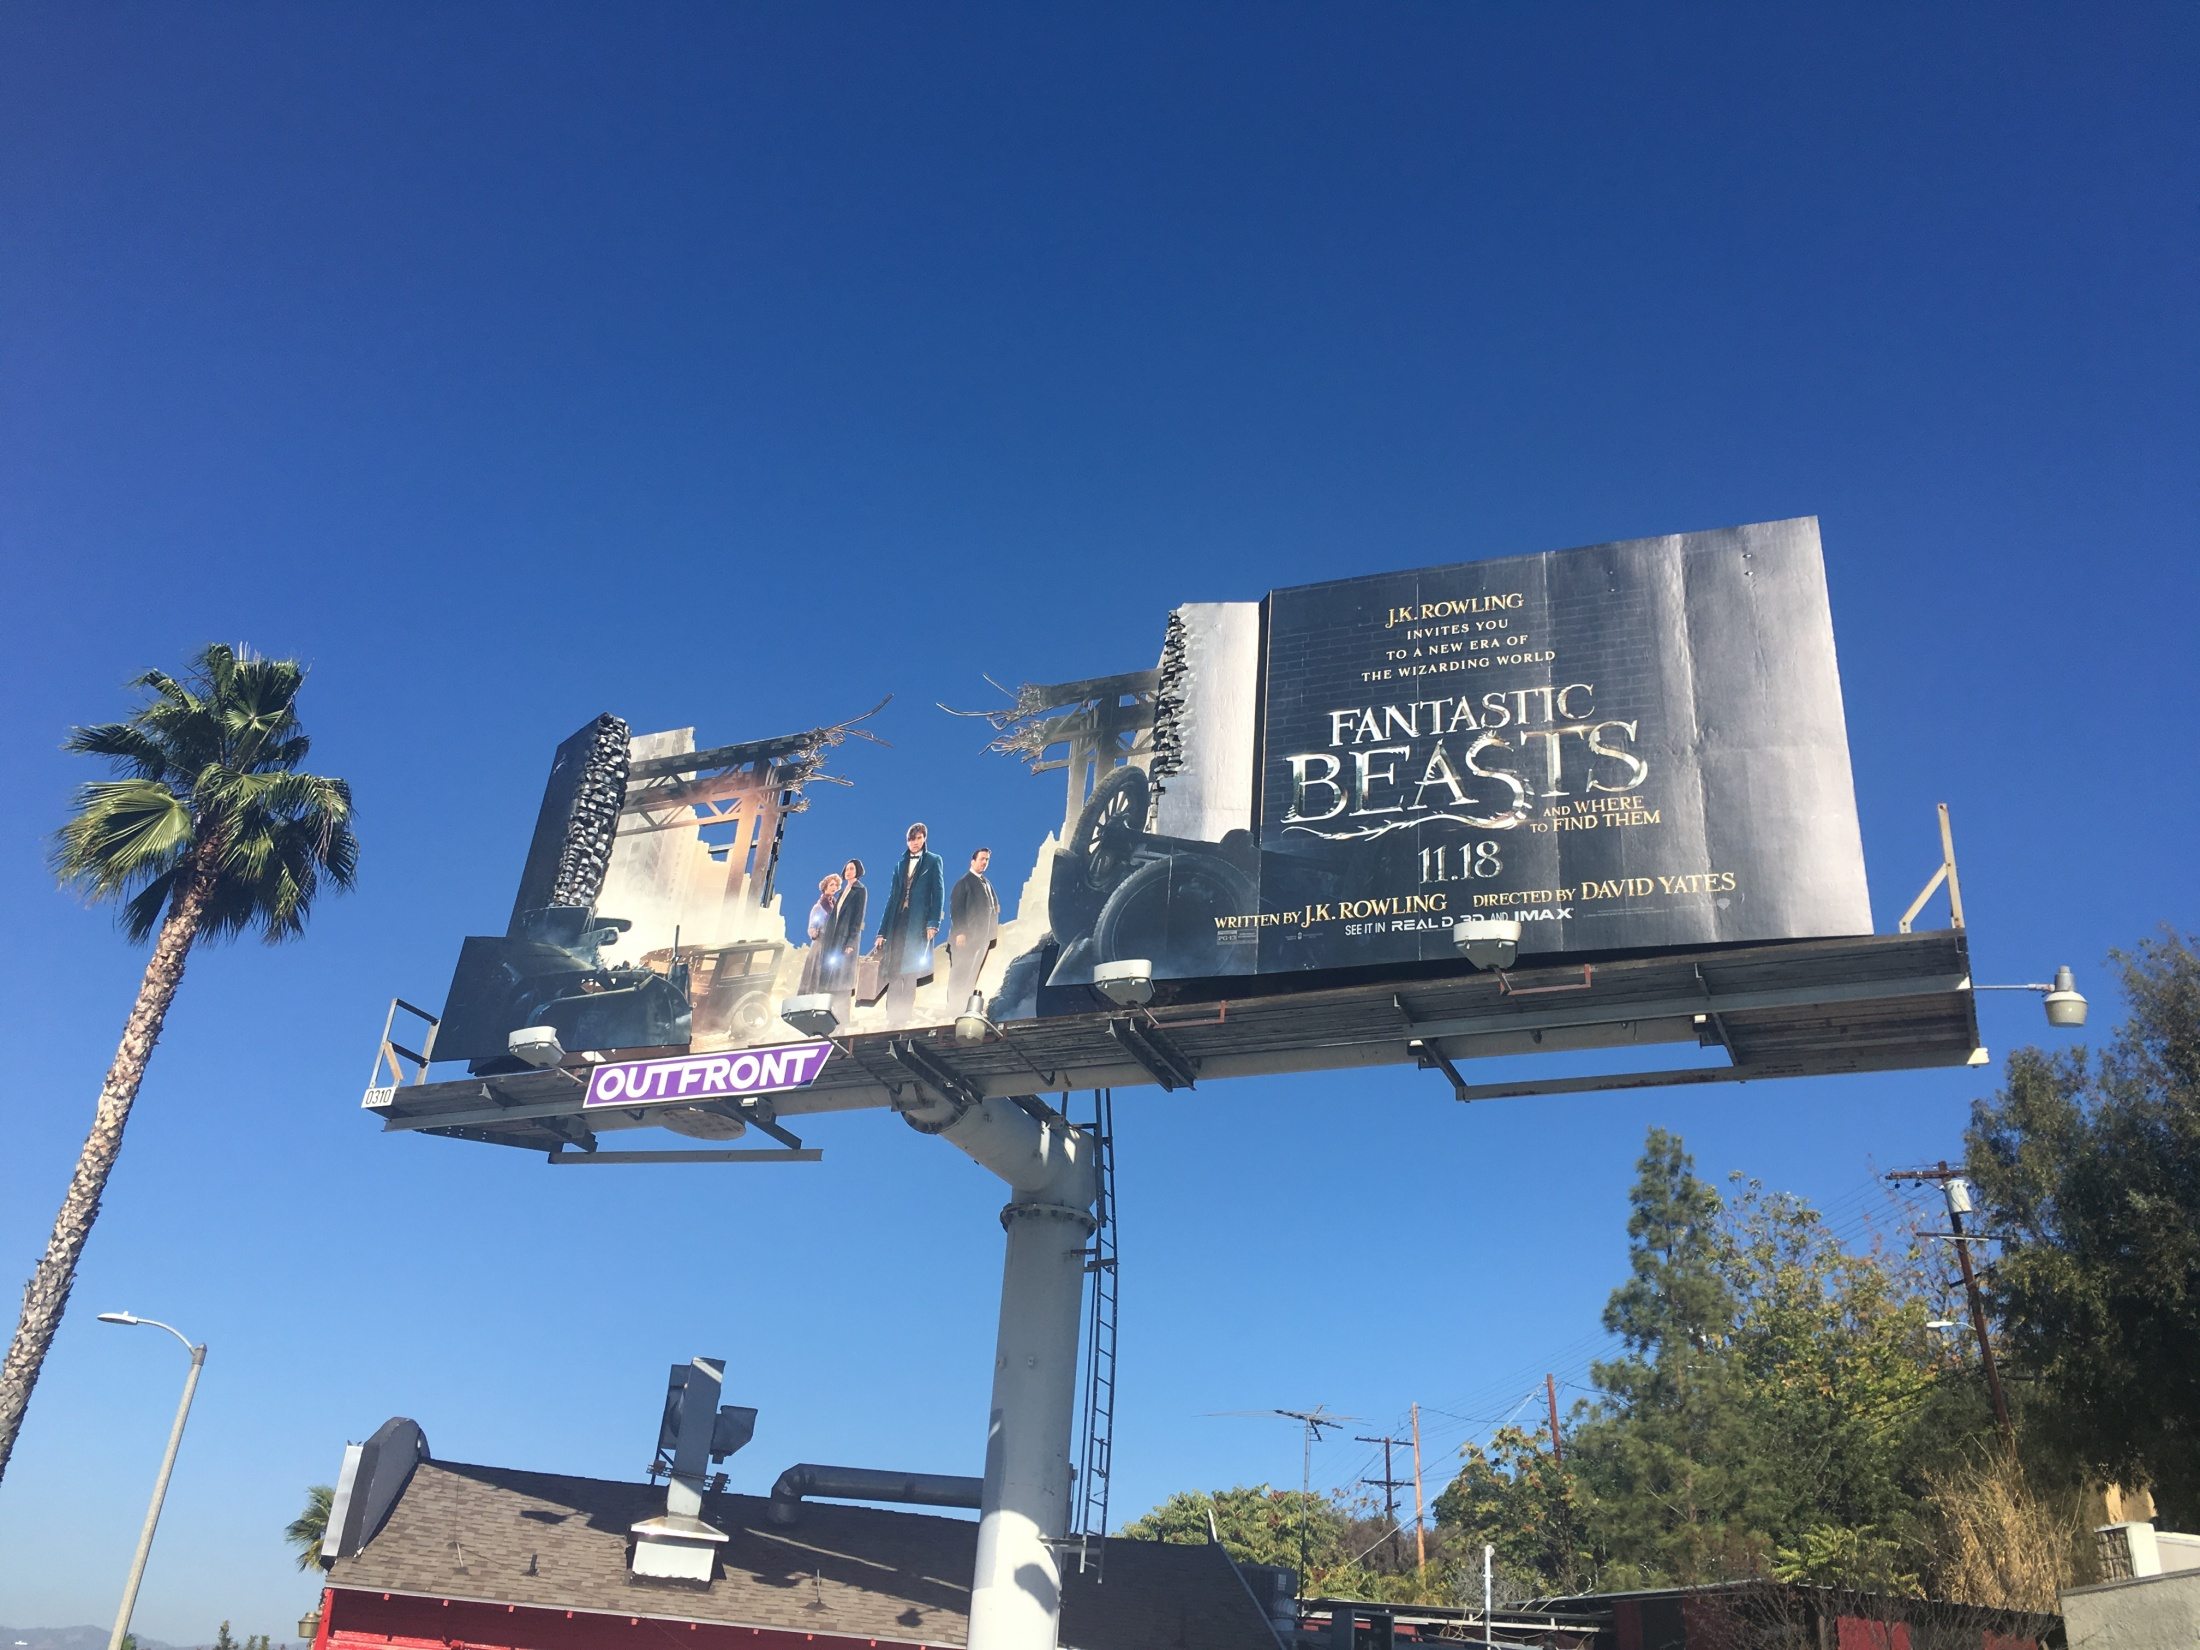 Thumbnail for Fantastic Beasts and Where to Find Them, 3D Billboard